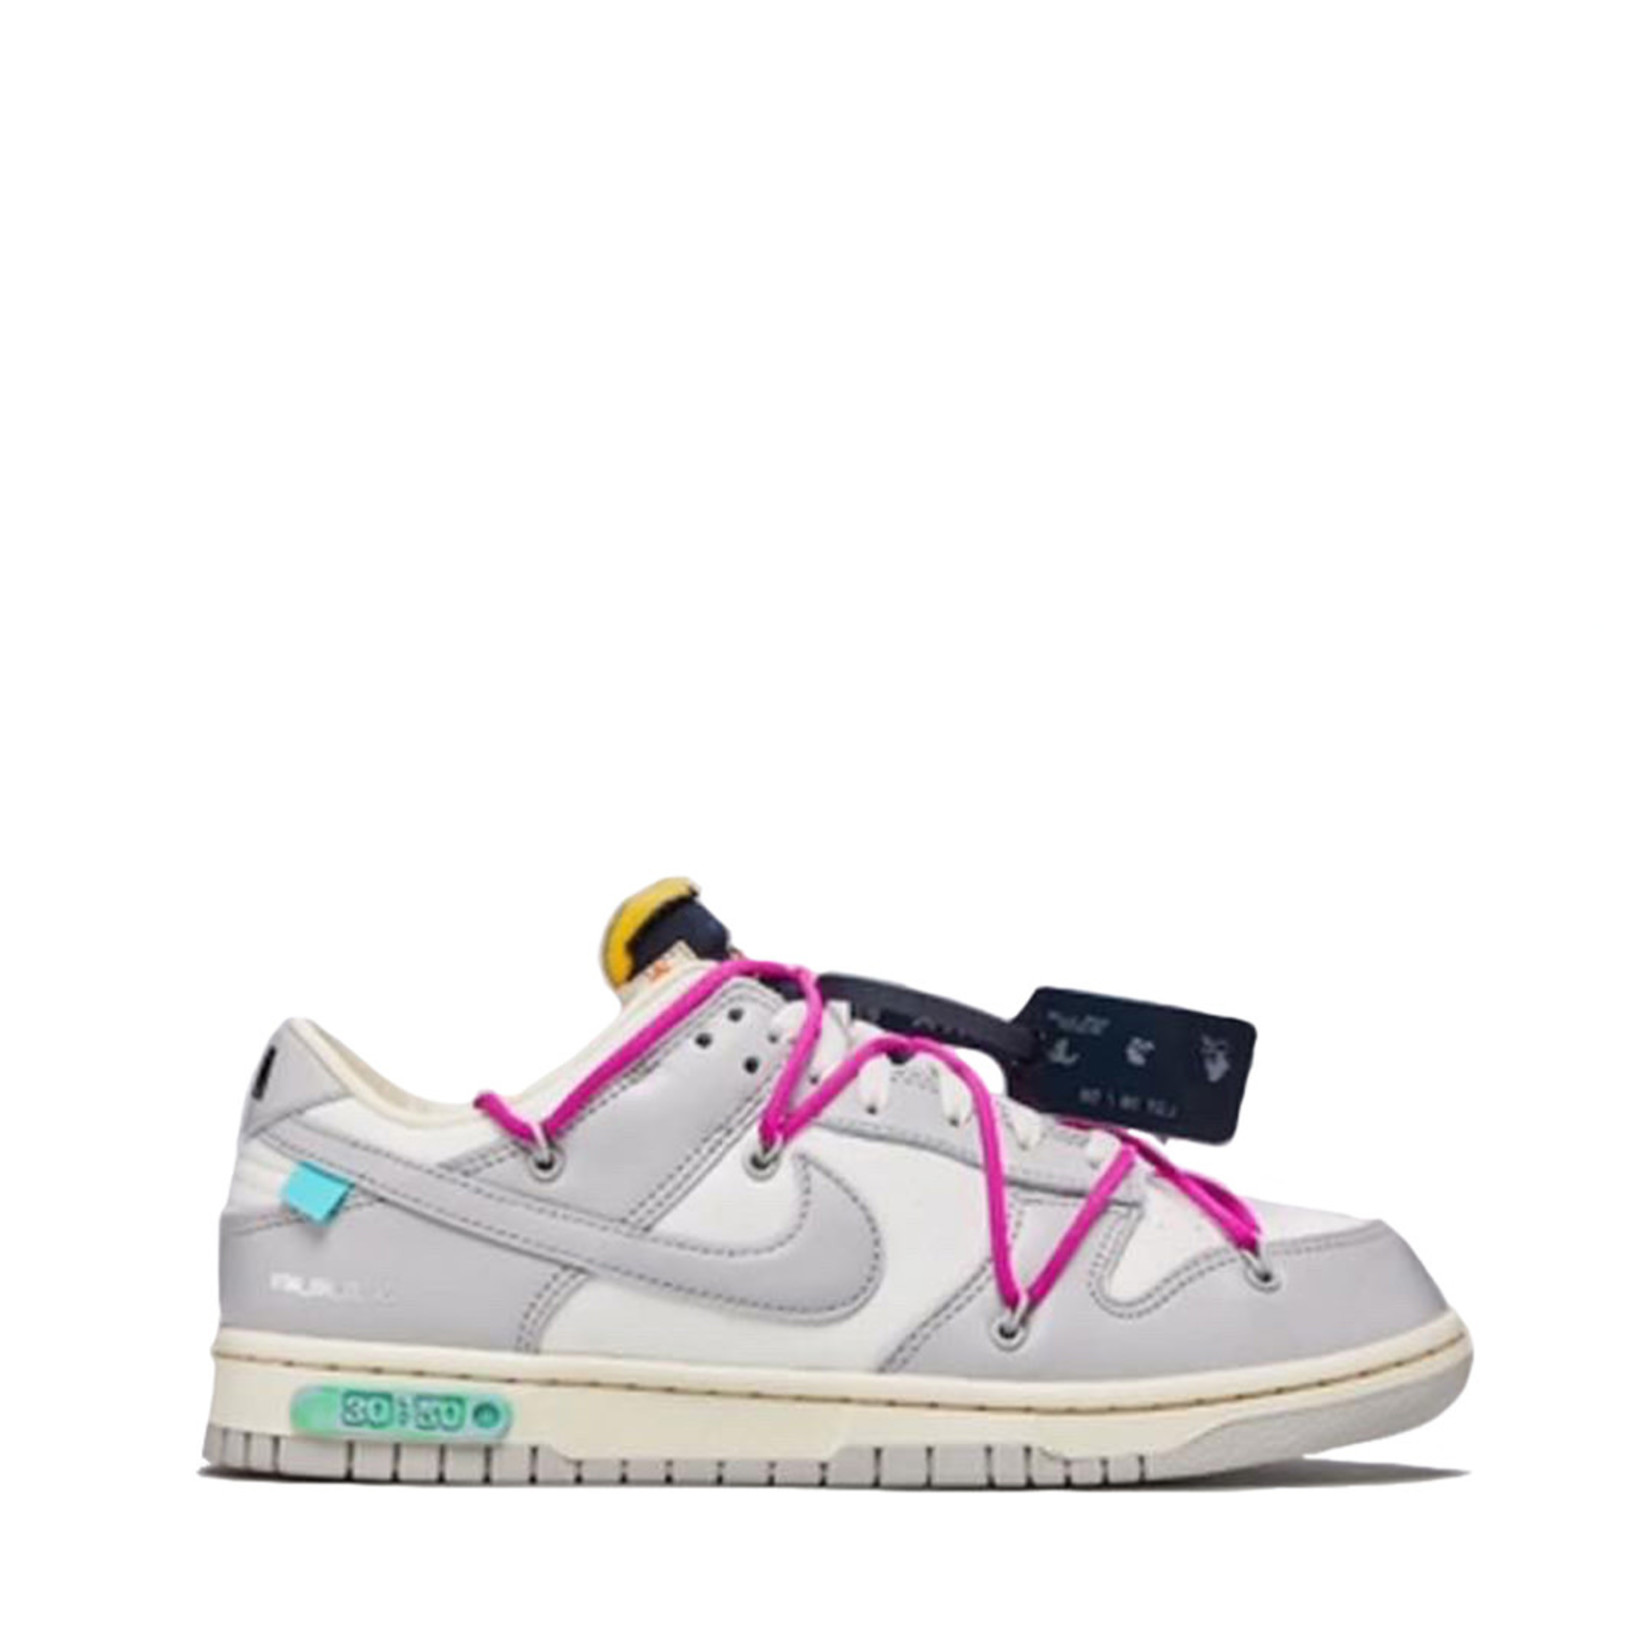 Off-White Nike Dunk Low Off-White Lot 30